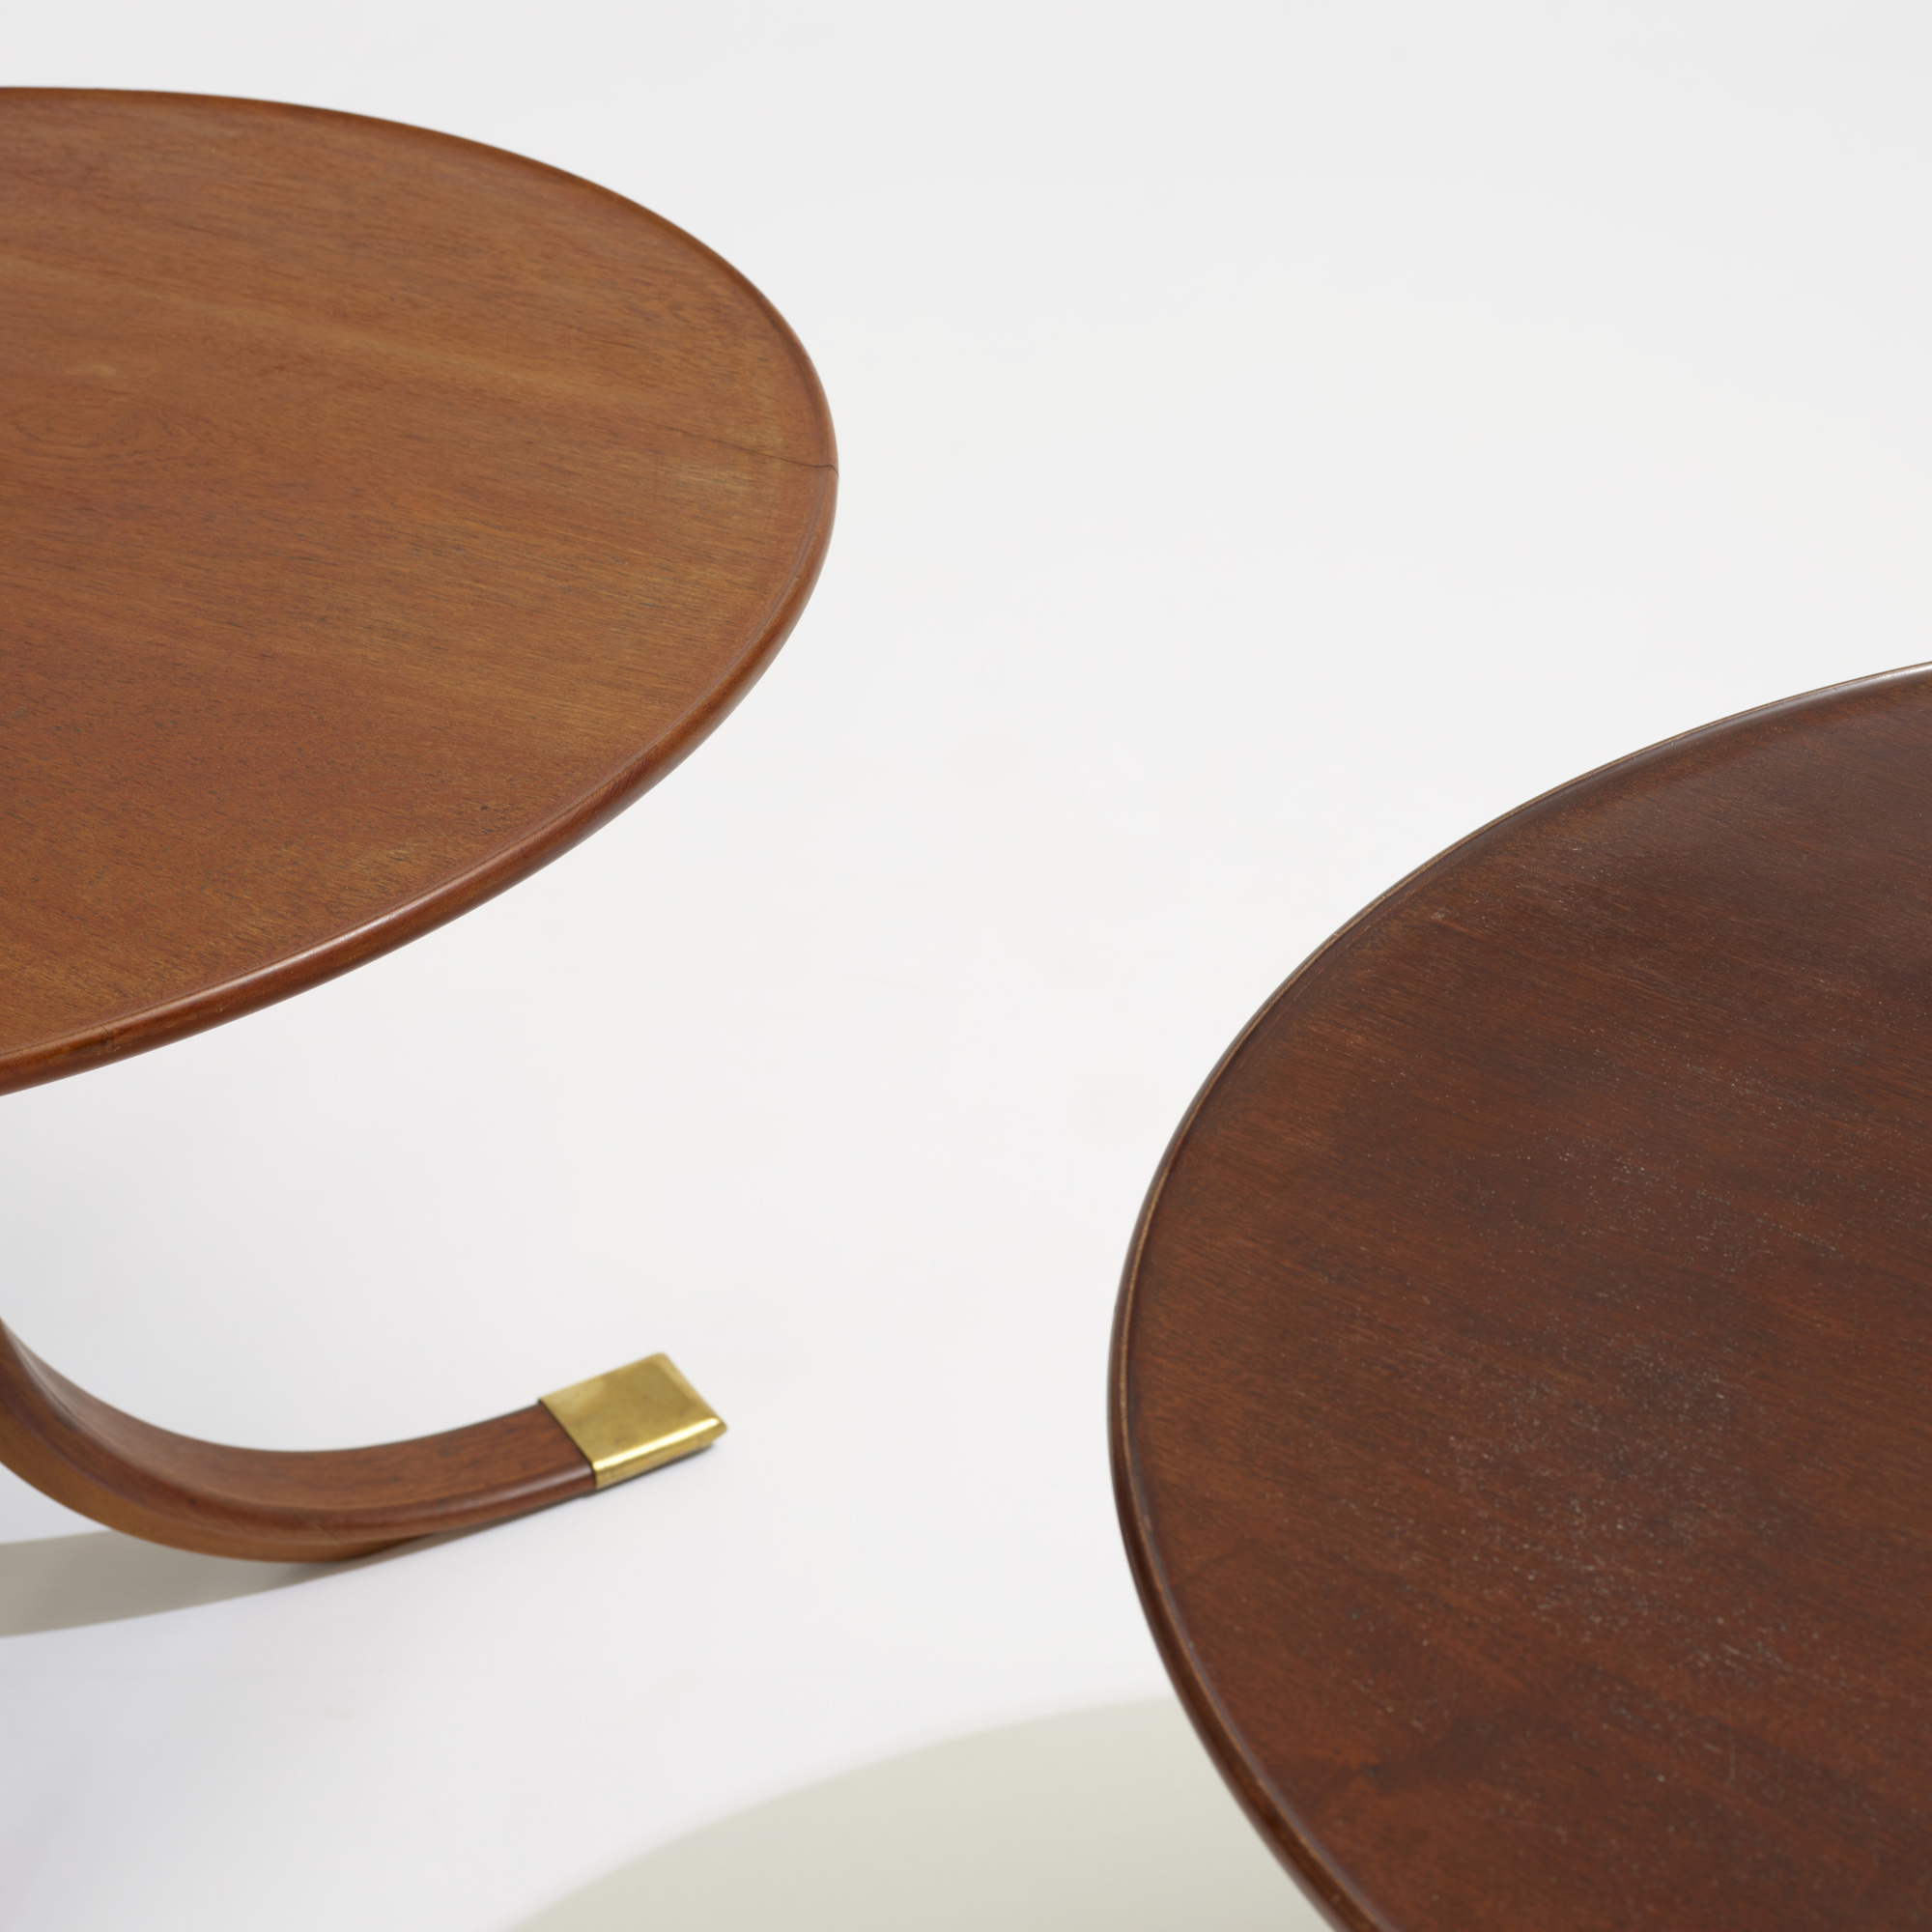 334: Frits Henningsen / occasional tables, set of two (2 of 2)